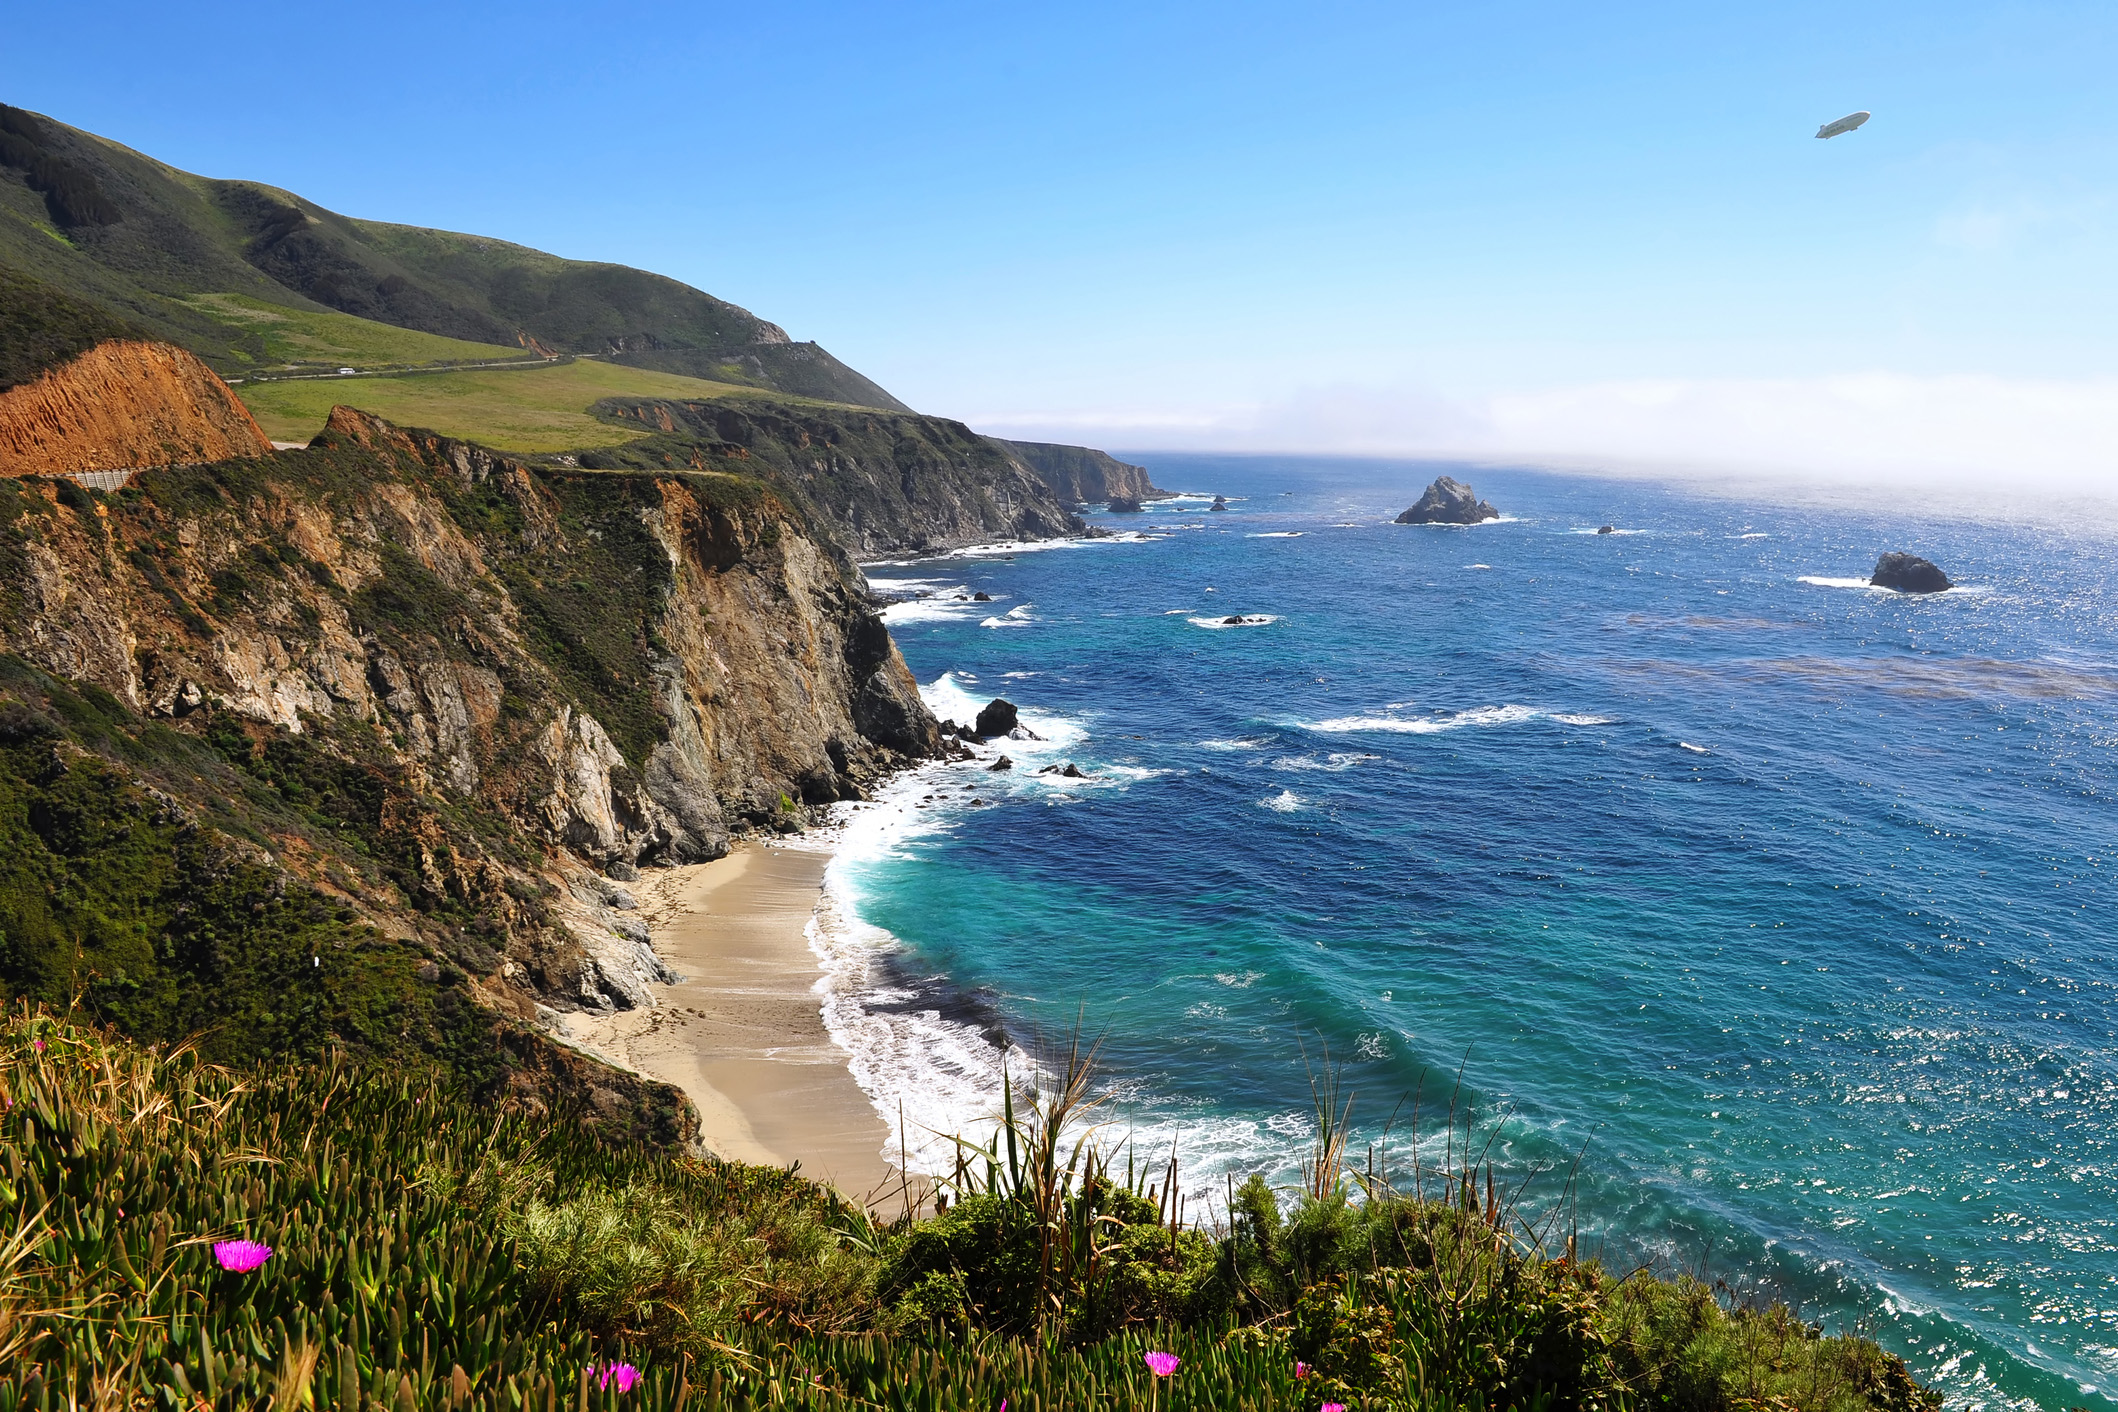 What Are The Best Beach Towns In California